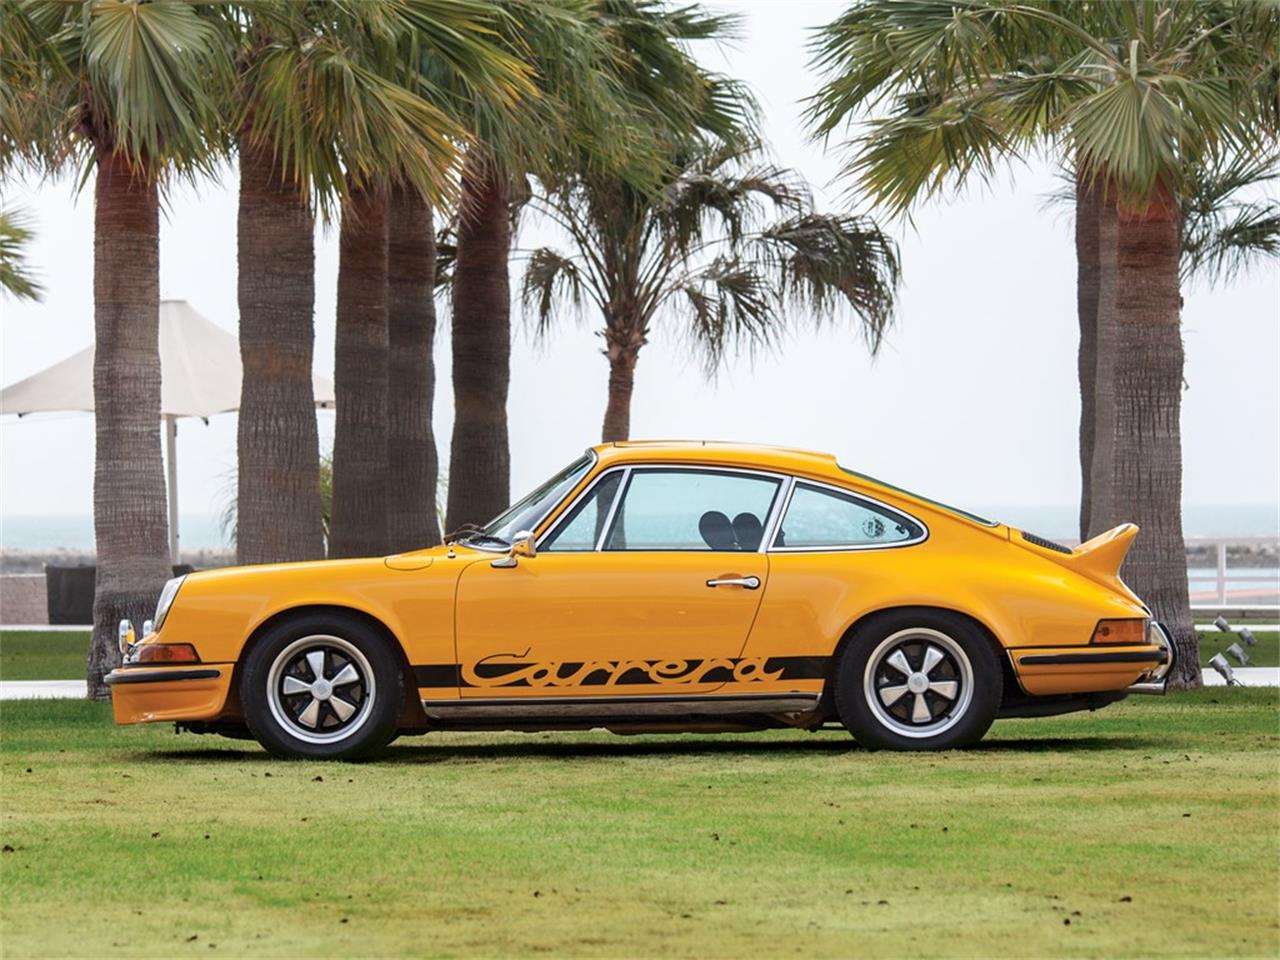 1973 Porsche 911 Carrera RS (CC-1274025) for sale in Yas Island, Abu Dhabi